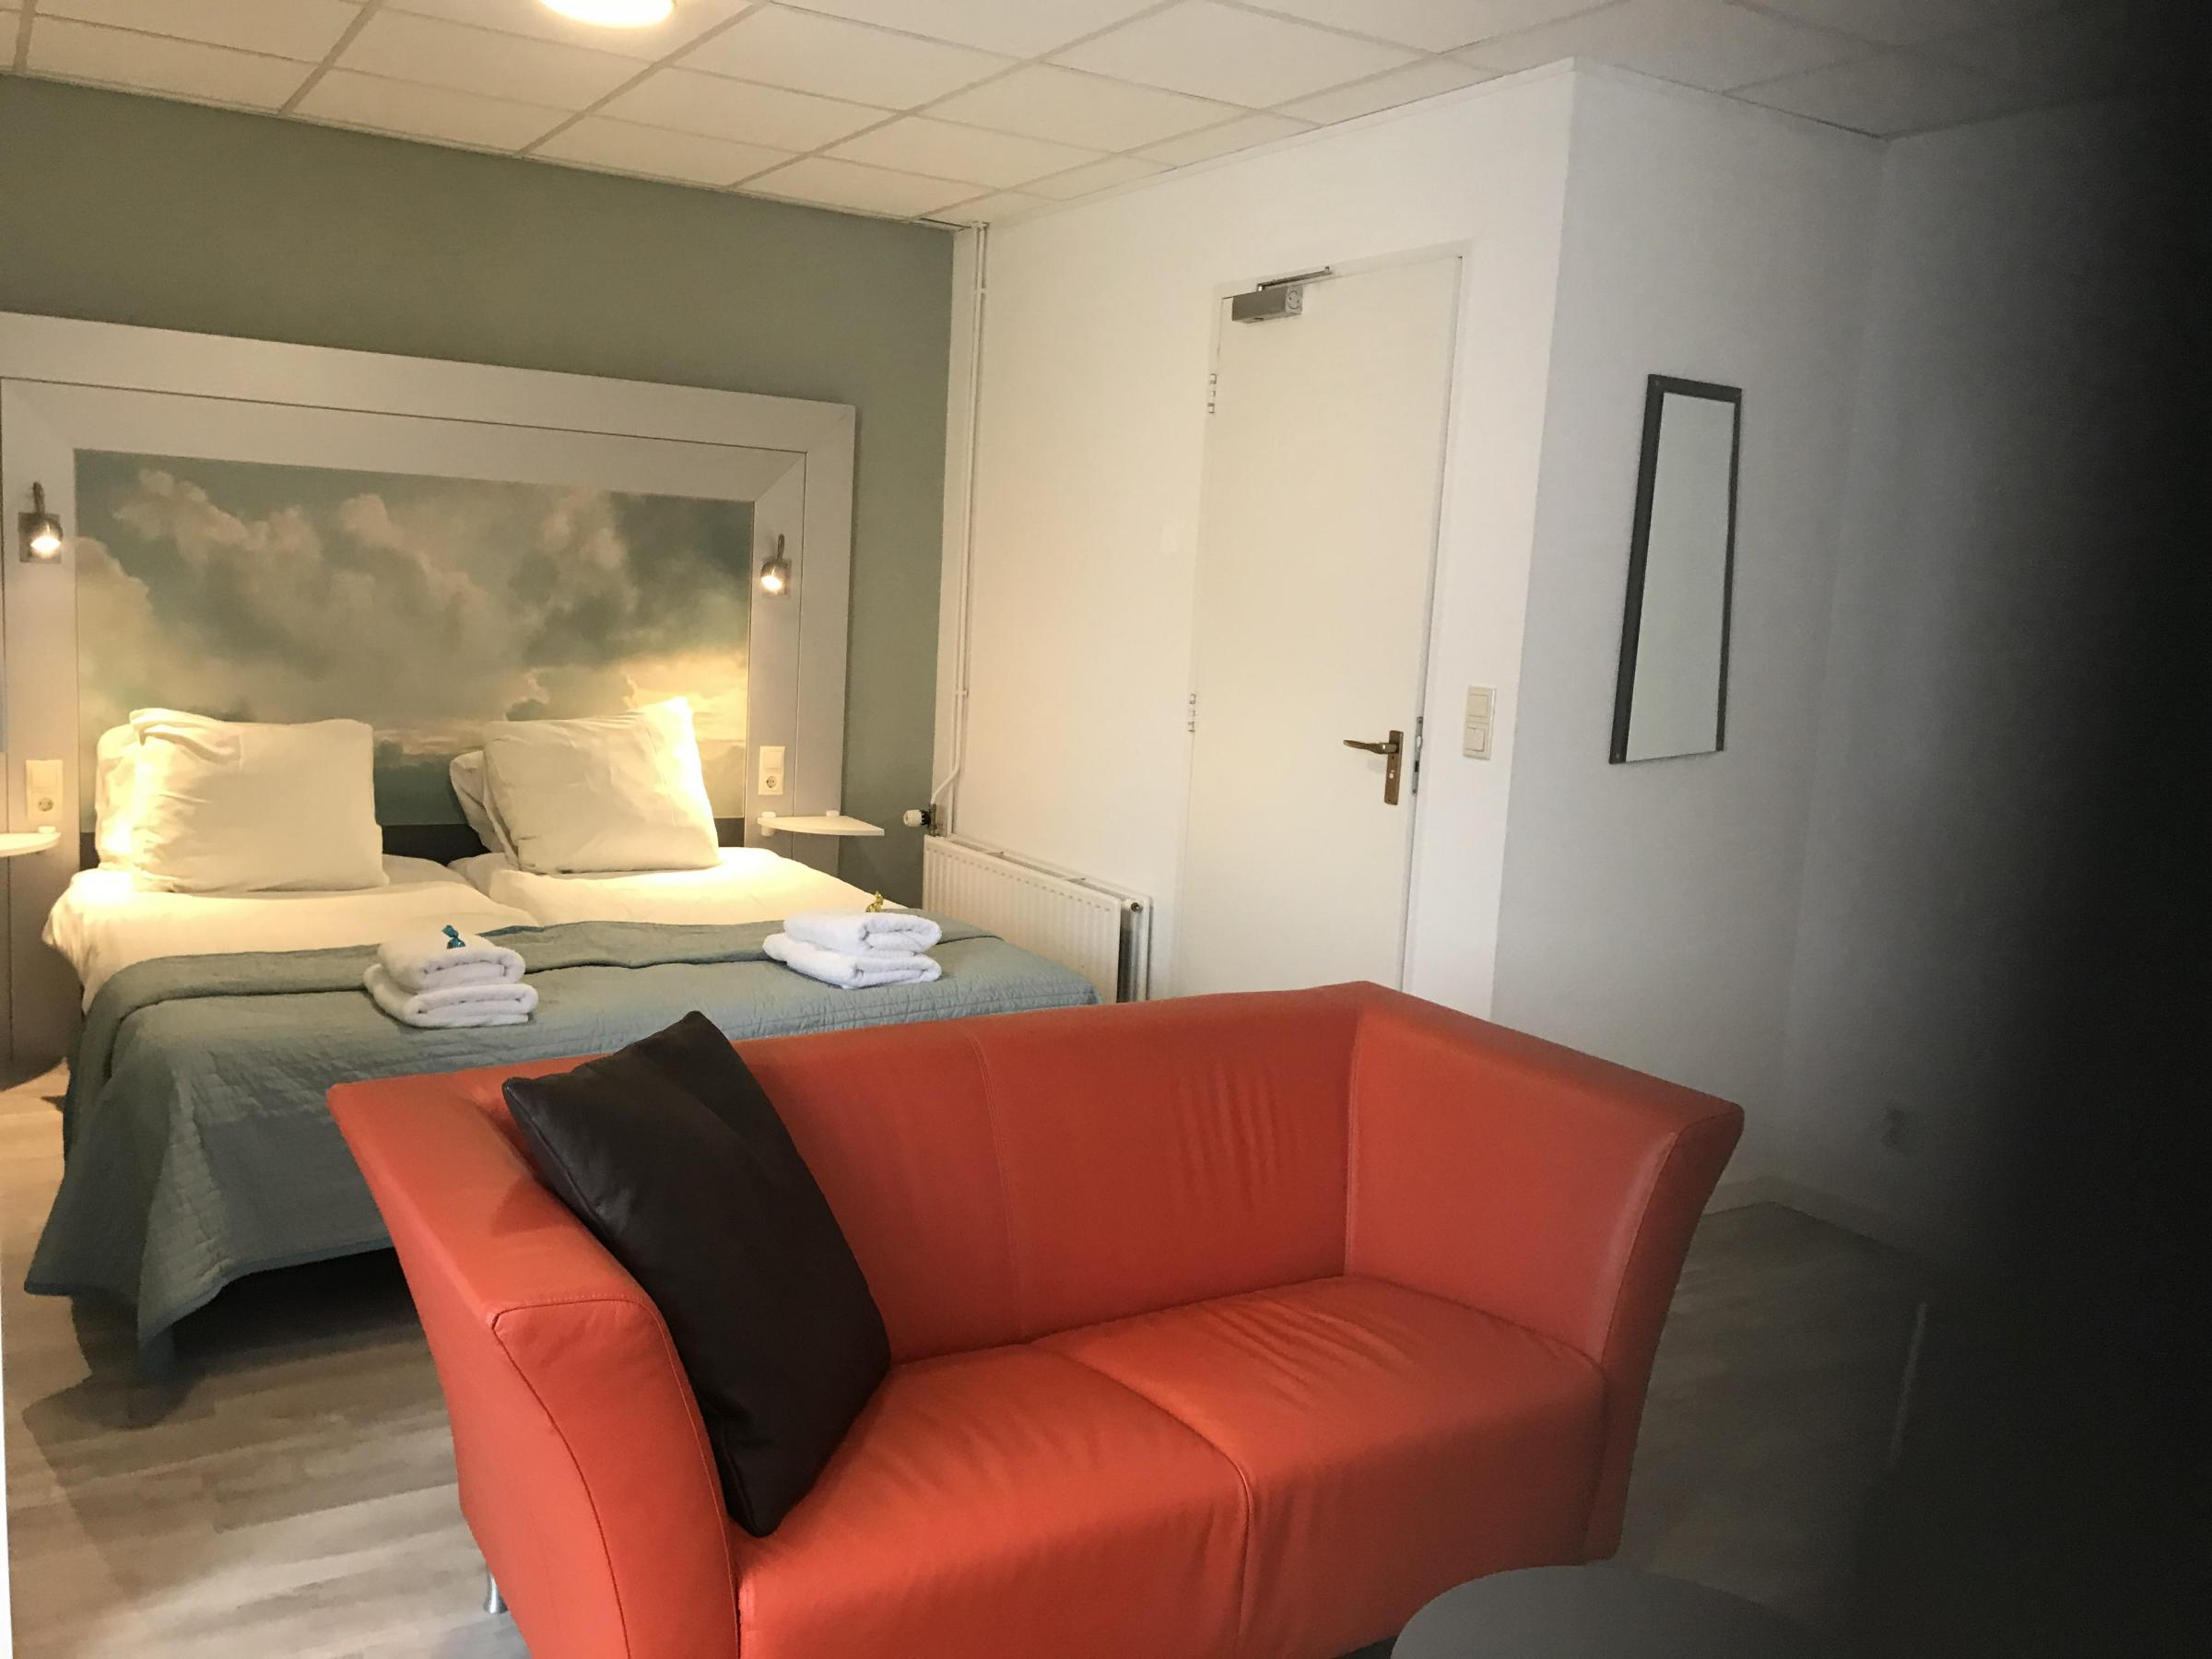 Apartment Deluxe Noord Beveland - 4 persons